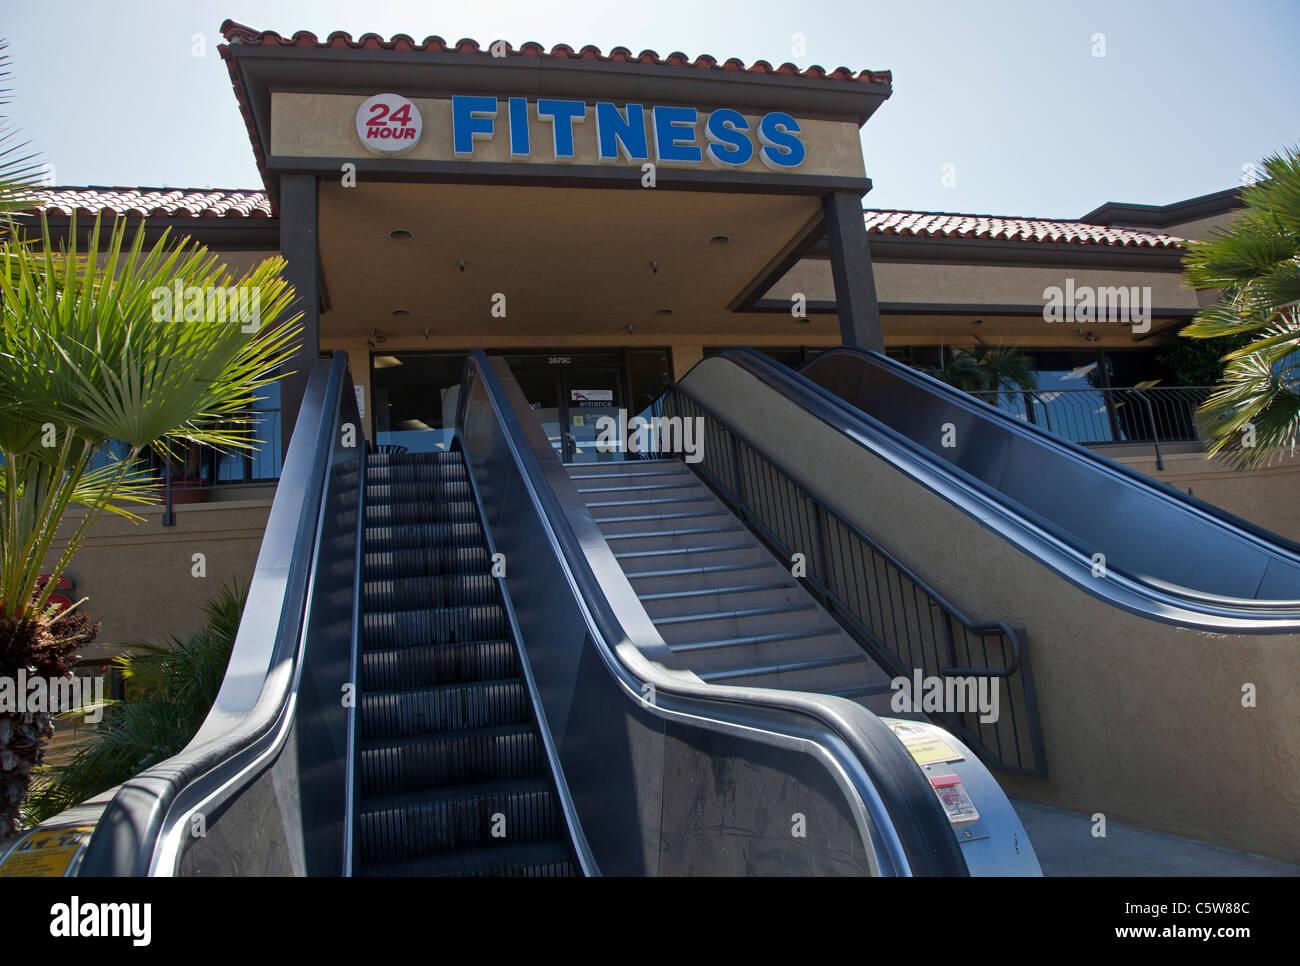 San Diego, California - A 24-Hour Fitness Center with escalators. - Stock Image